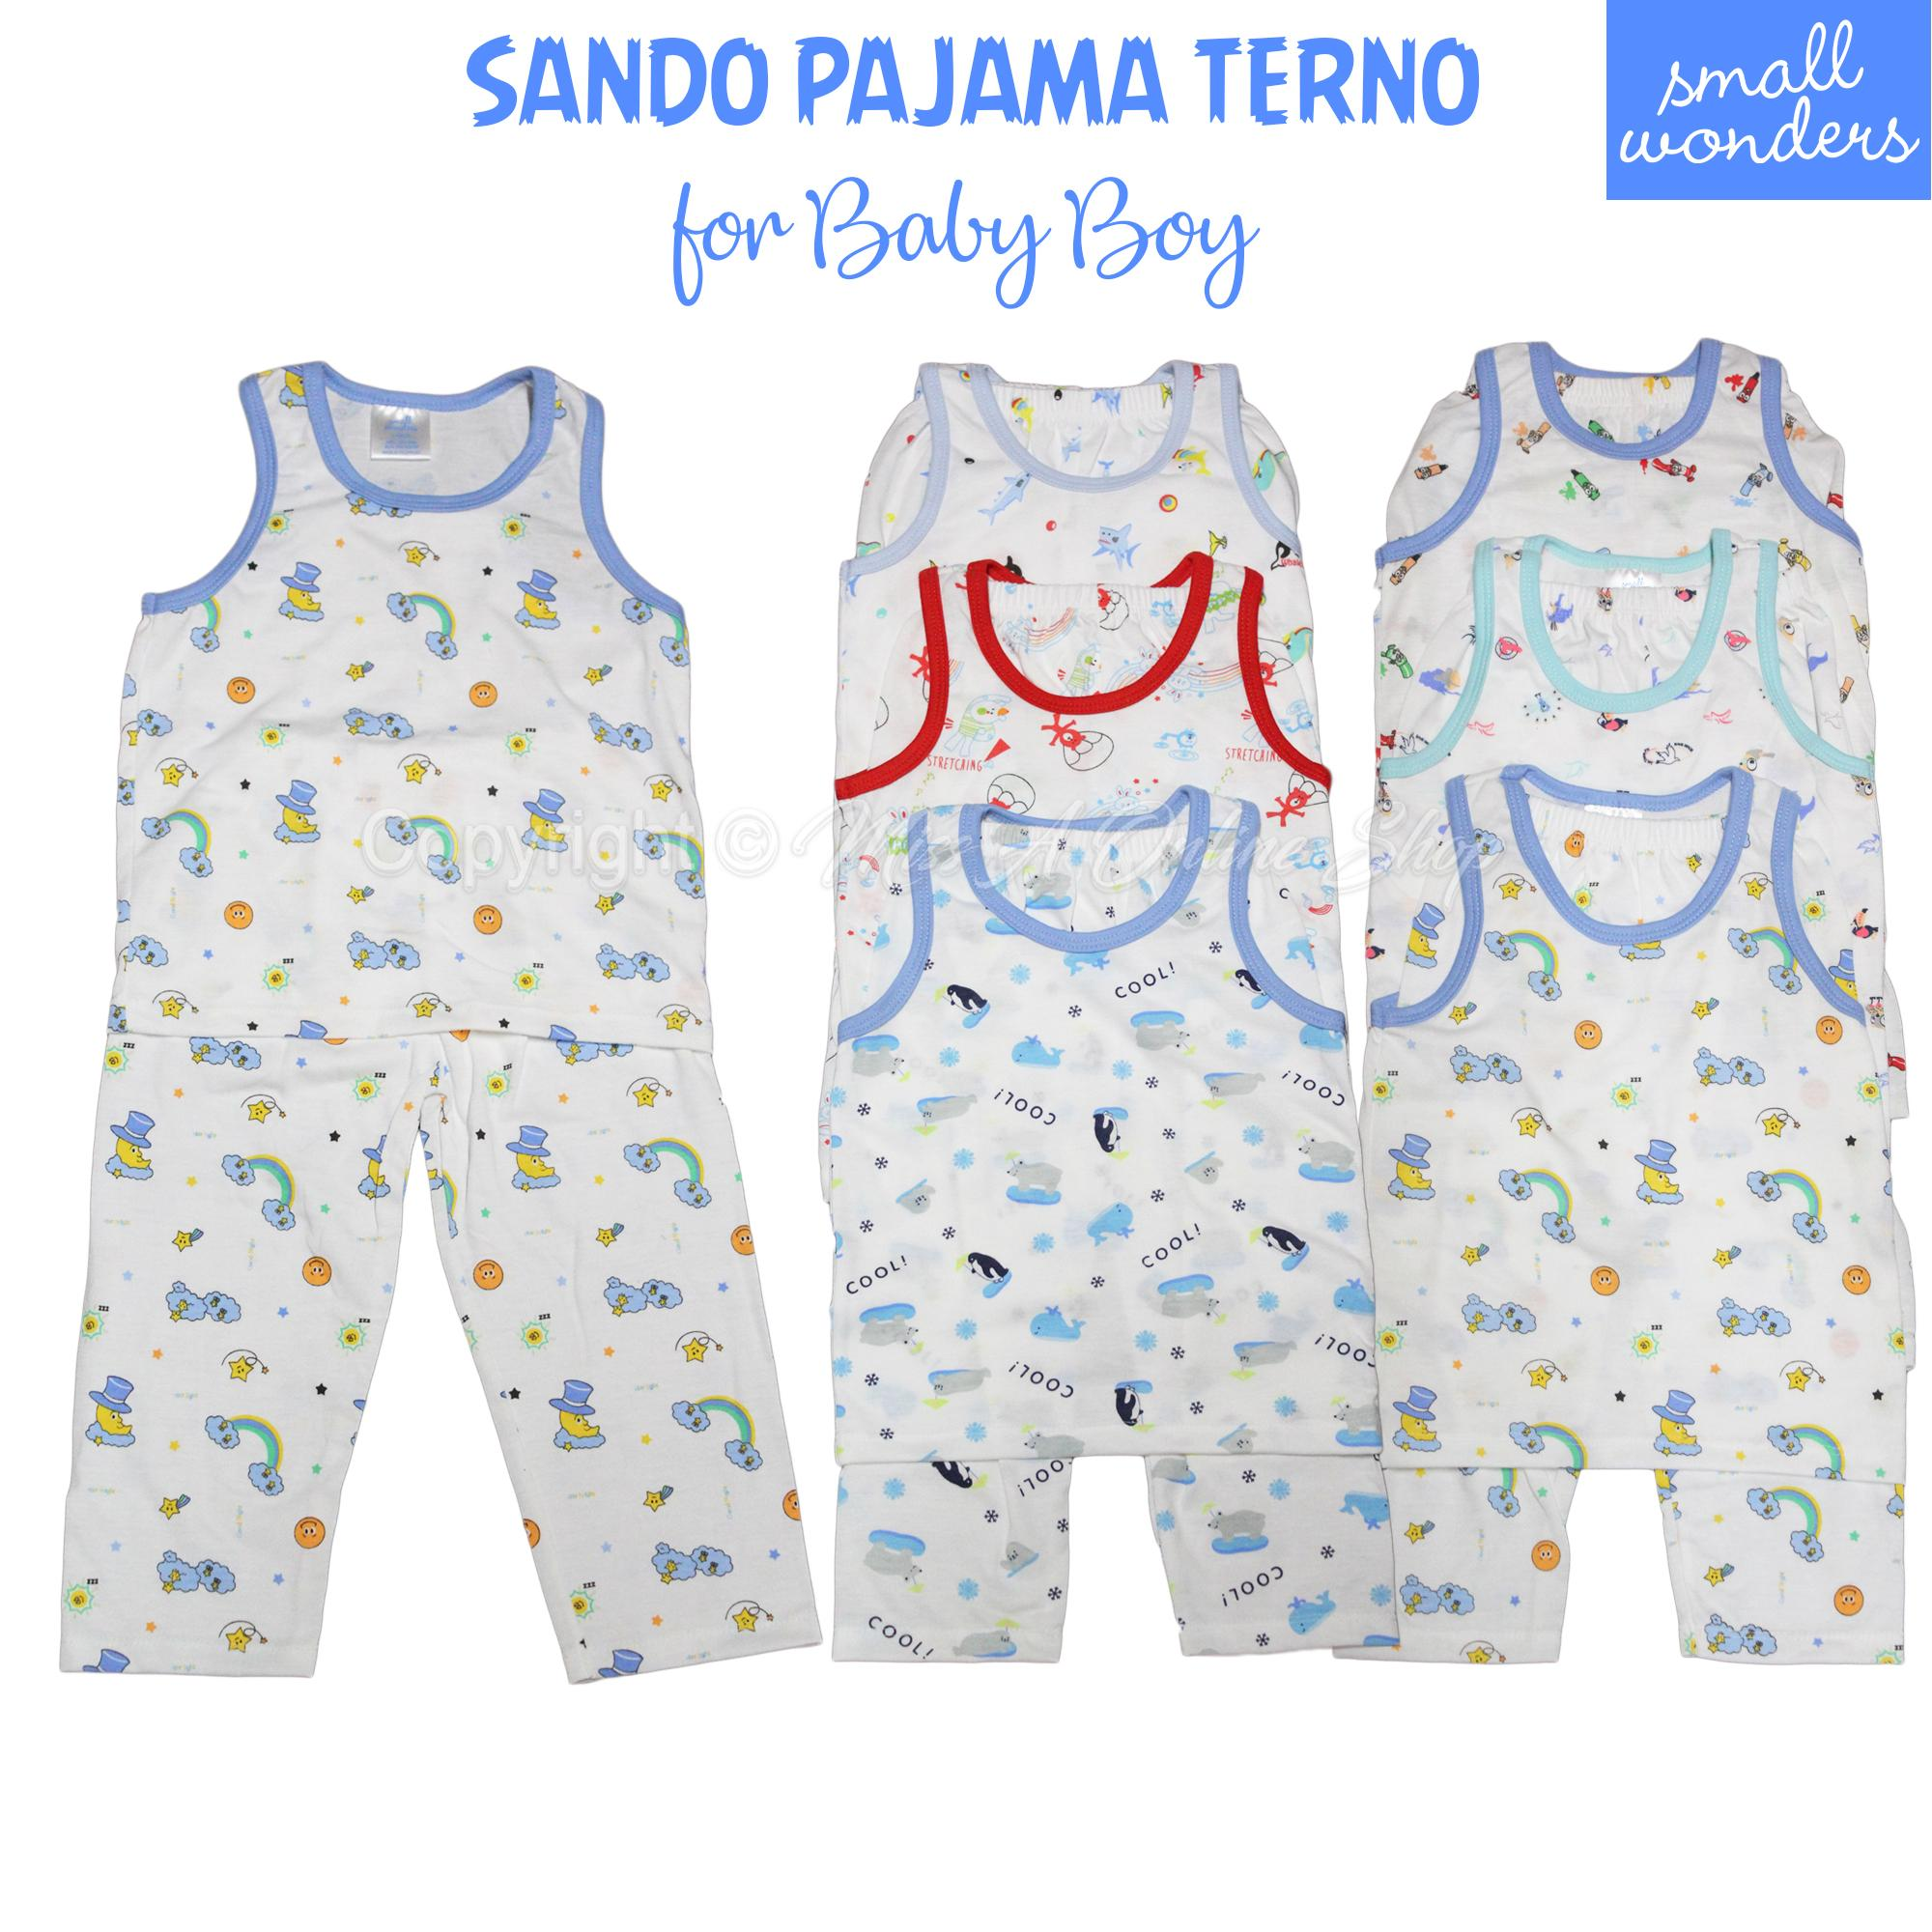 Terno Boxer Sando Pajama Small Wonders 0-5years Old(1 Pair) By Miss A Online Shop.